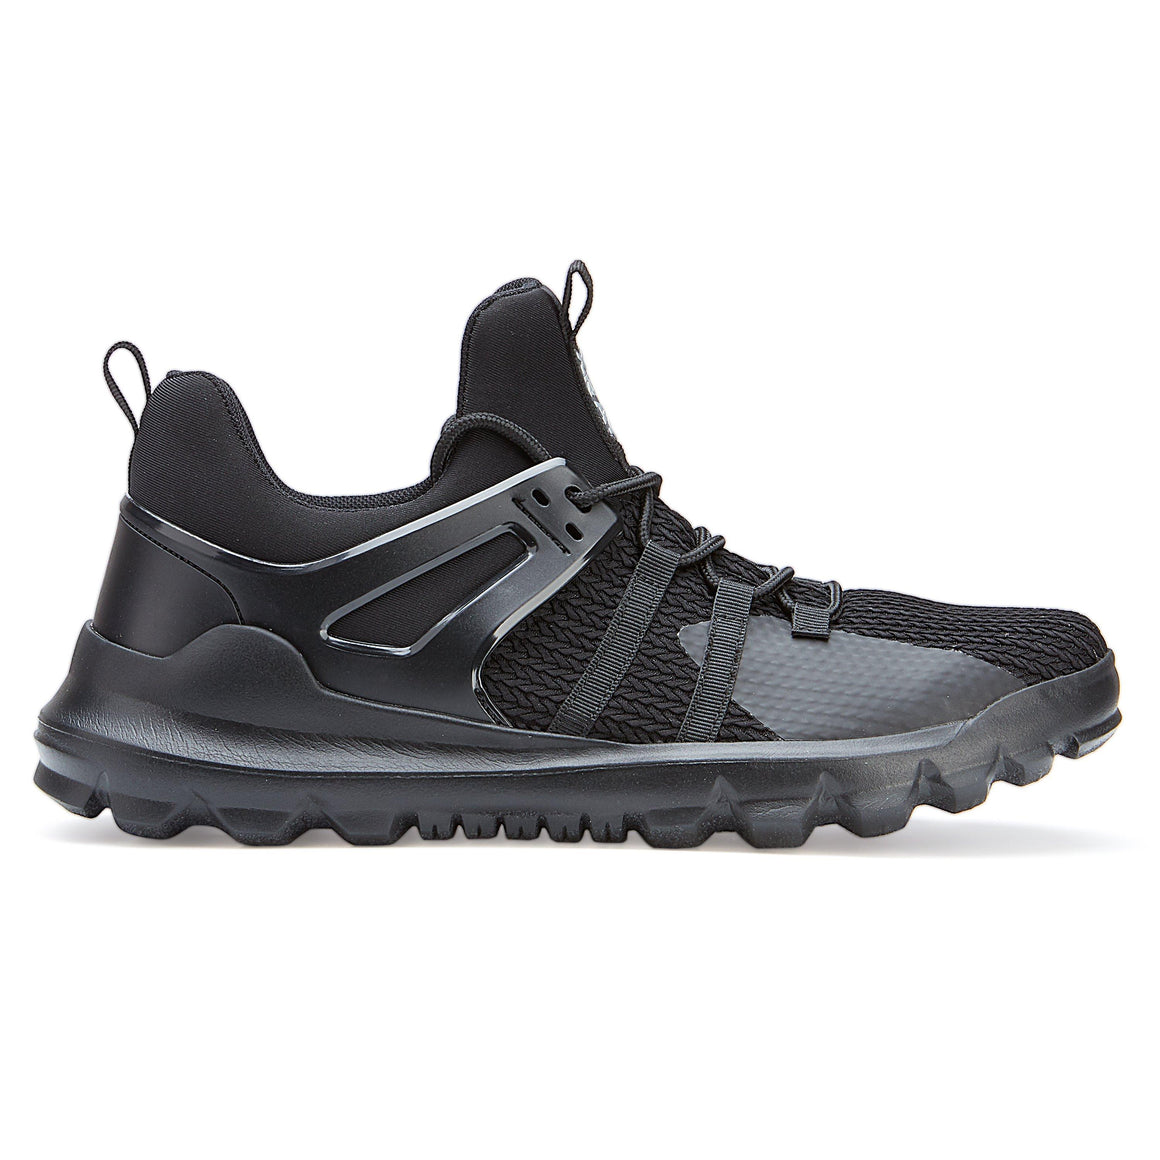 Xray Men's The Ampato Athletic Lowtop Sneakers BLACK